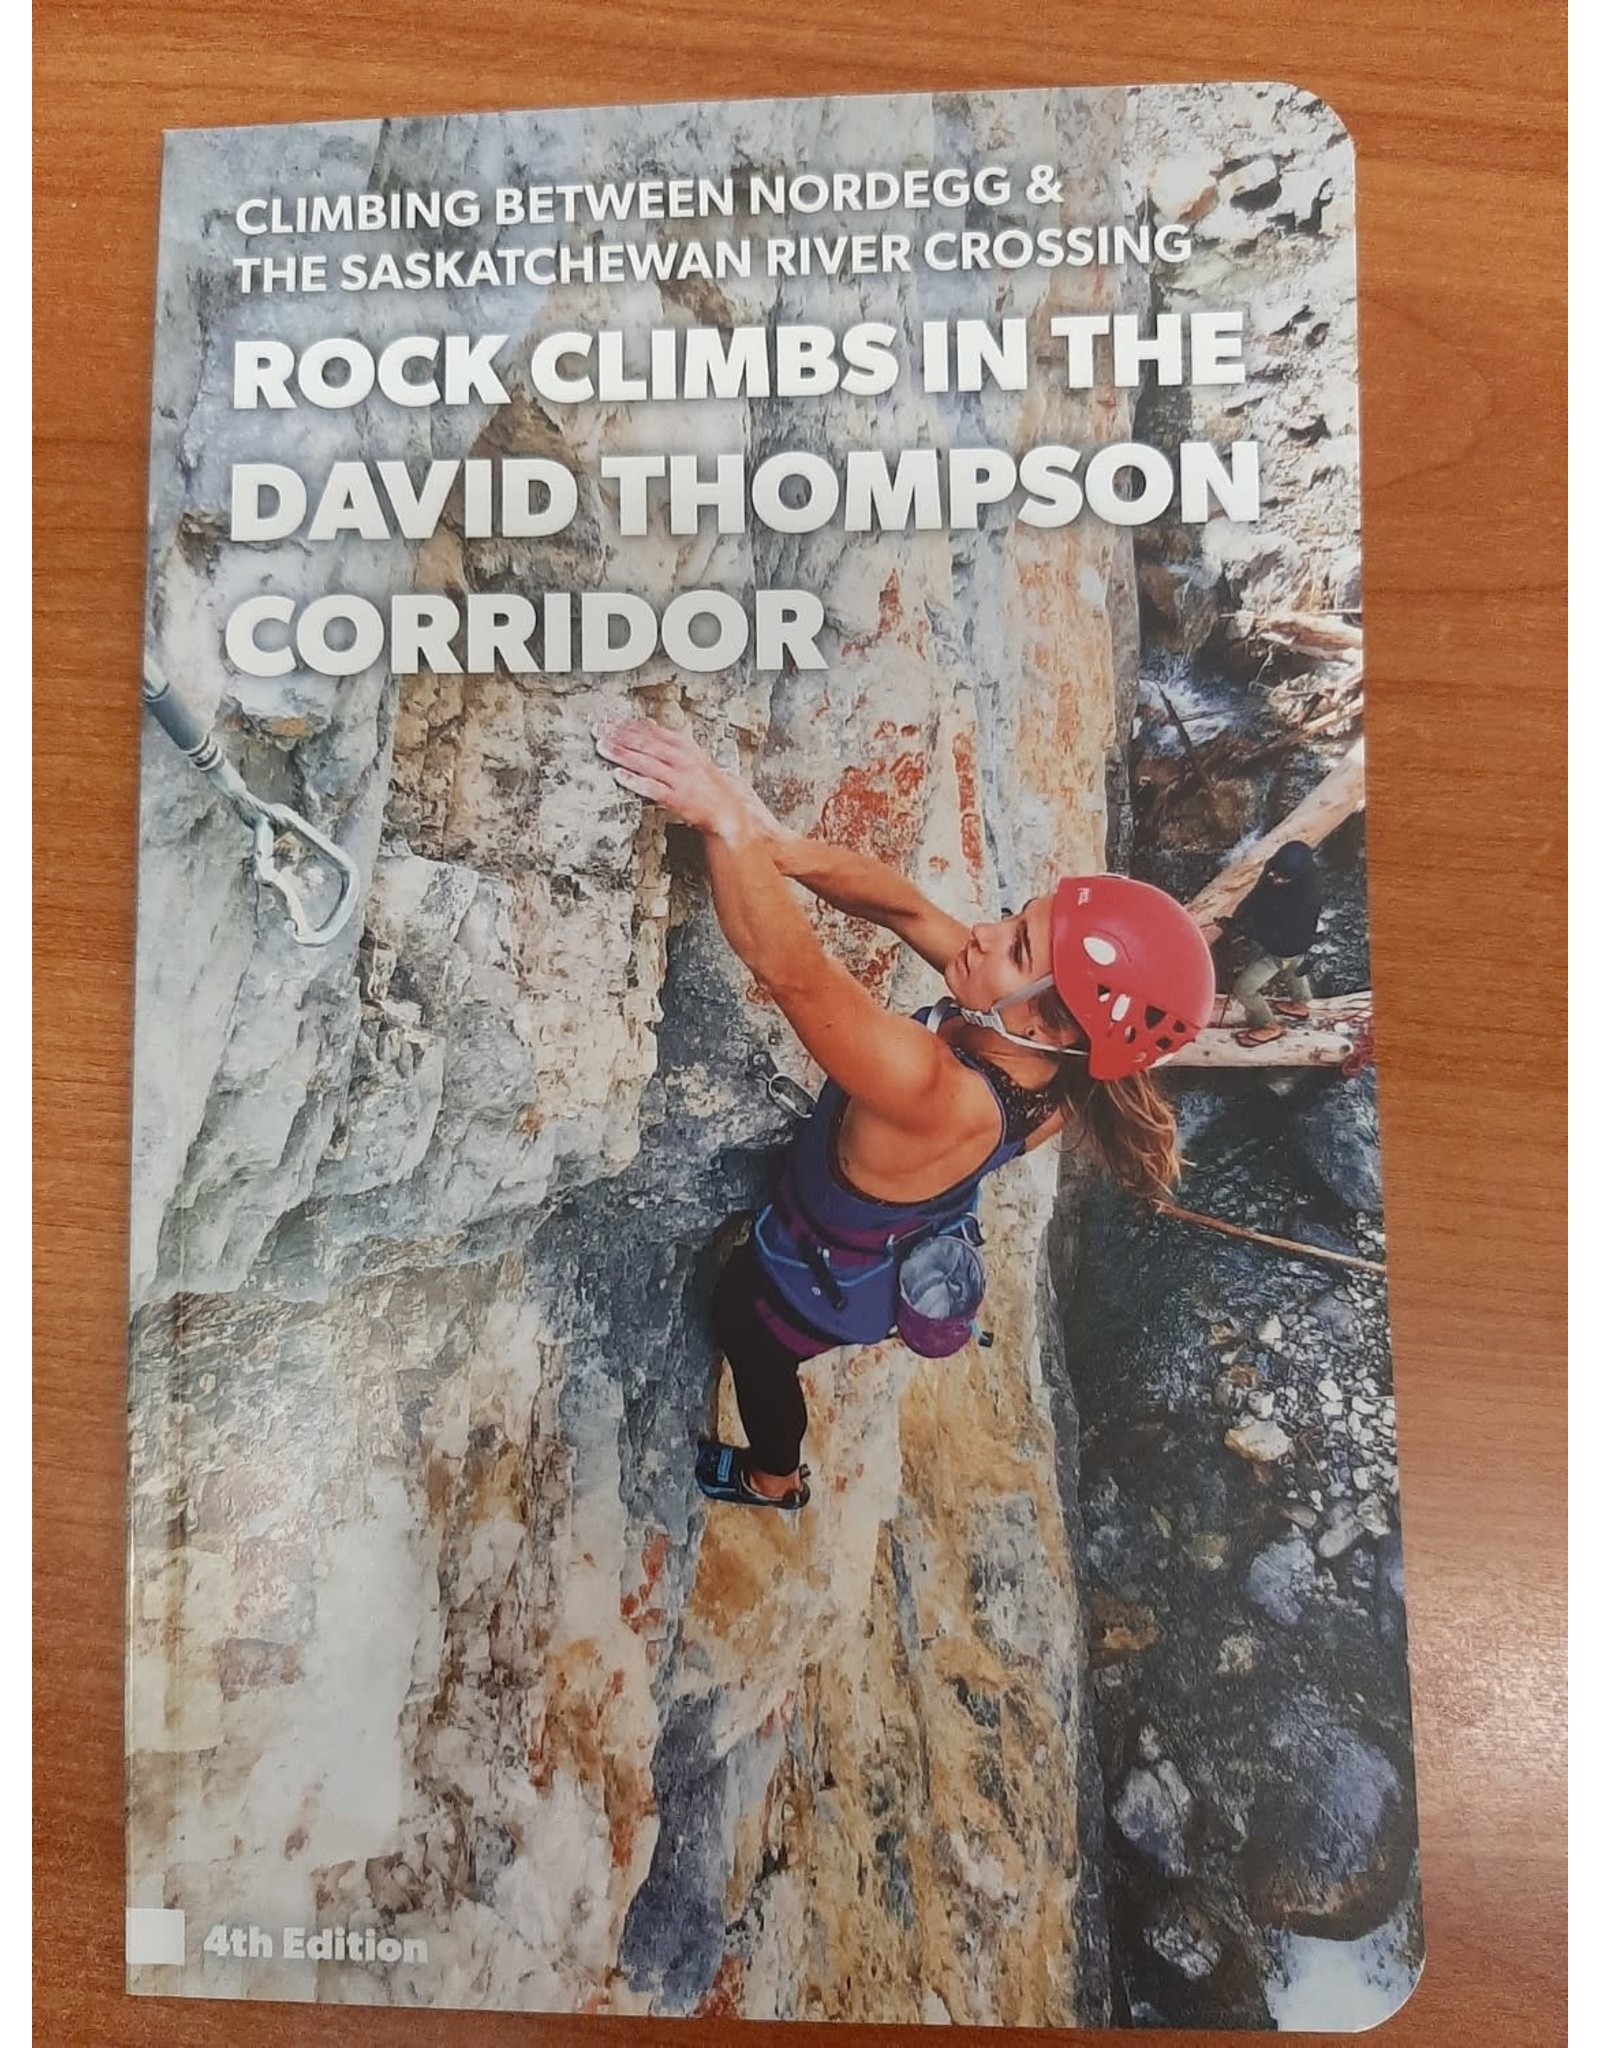 Red point design Rock Climbs in the David Thompson Corridor